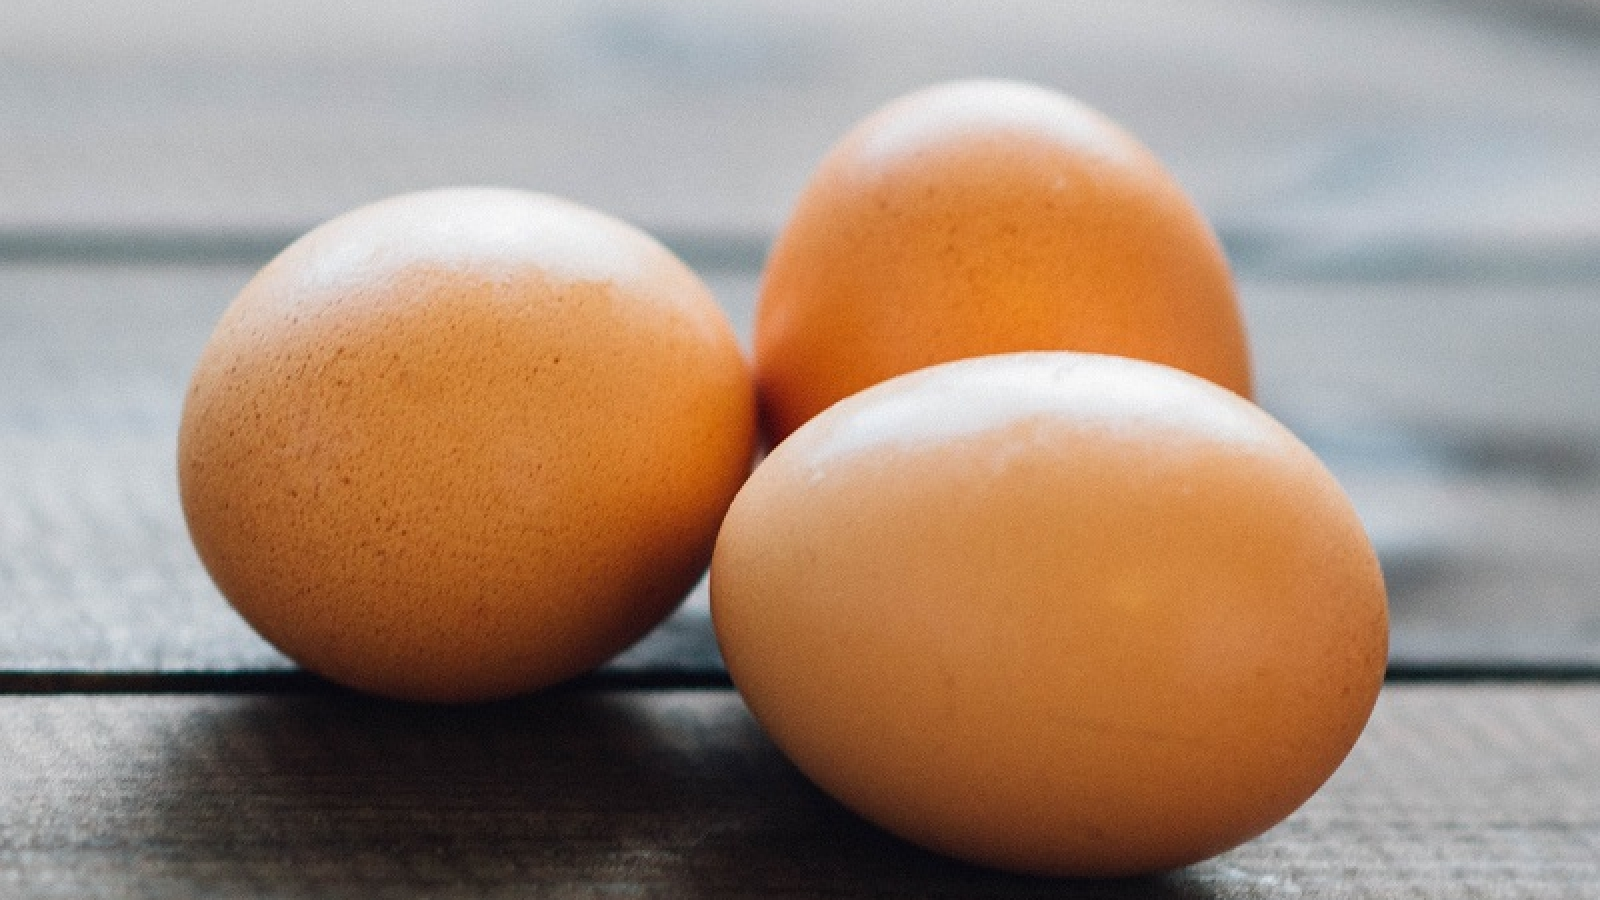 Myths about the egg